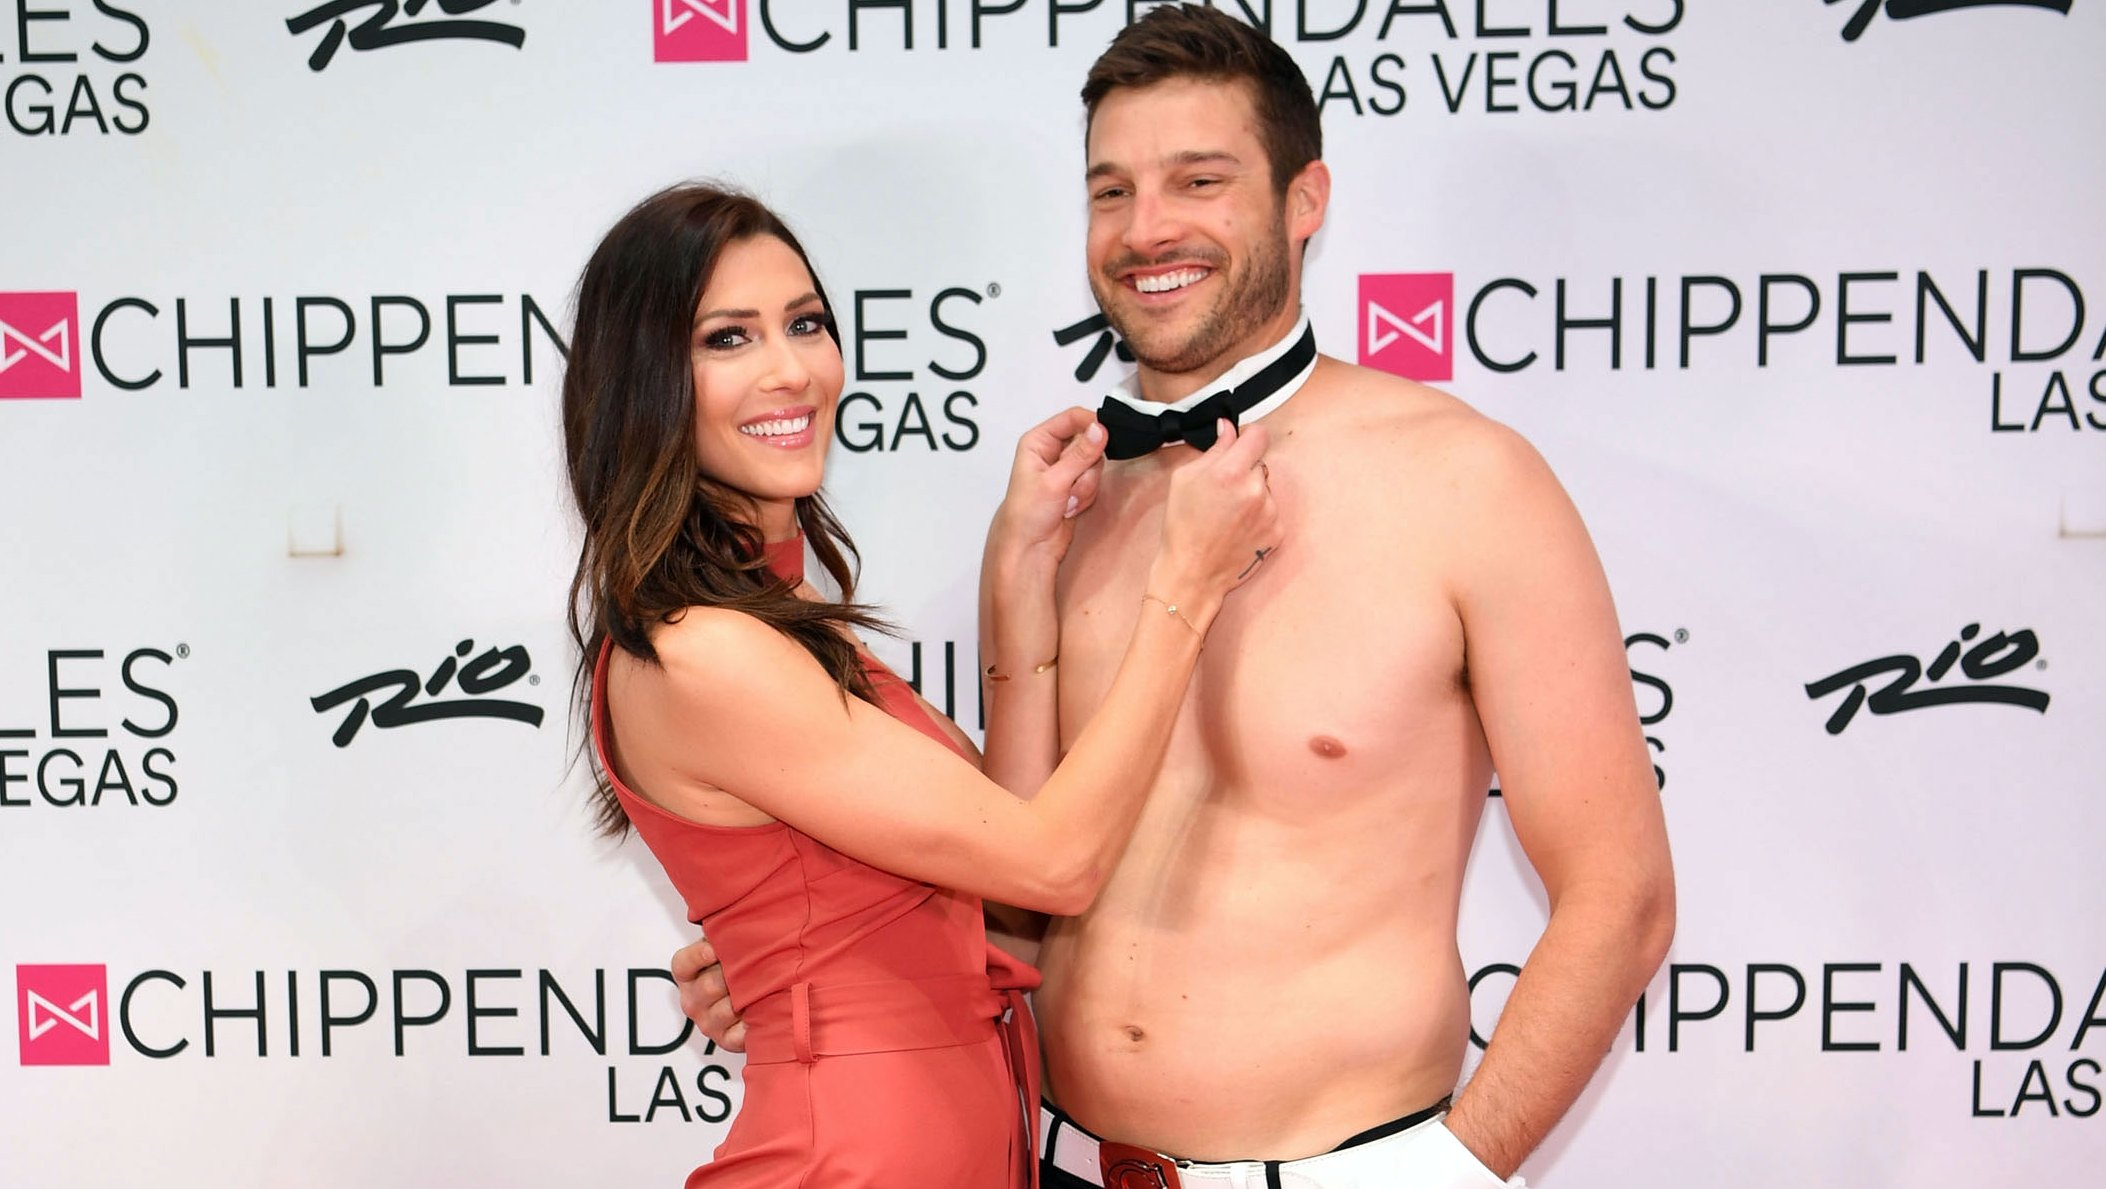 The Bachelorette's Becca Kufrin Gets a Chippendale's Lapdance From Garrett Yrigoyen